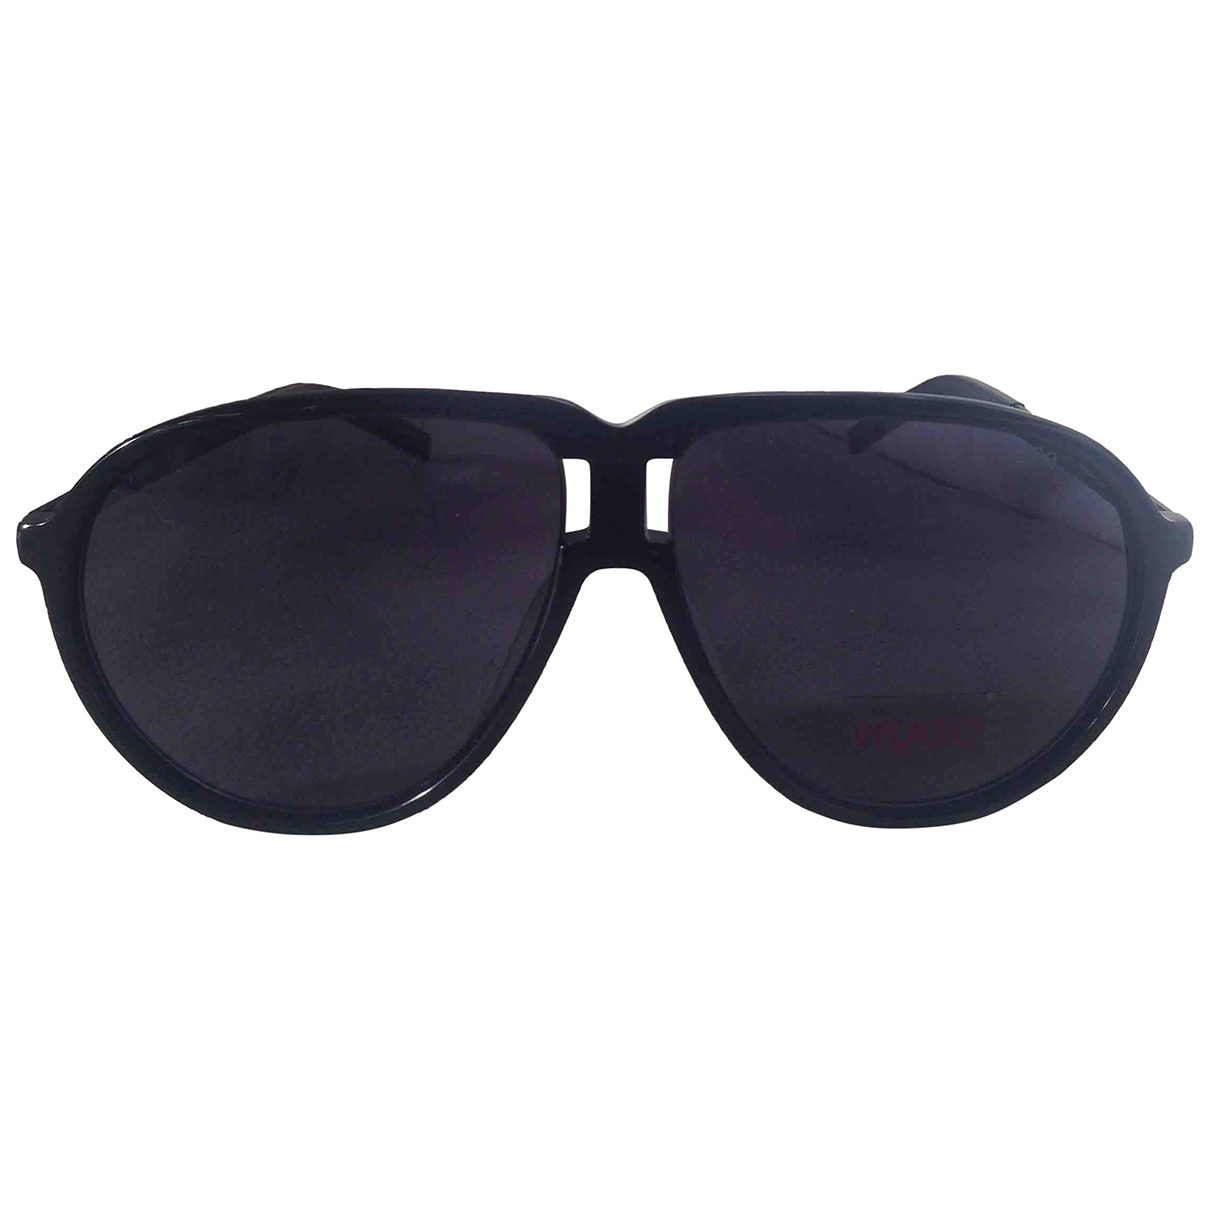 Hugo Boss \N Black Sunglasses for Men \N